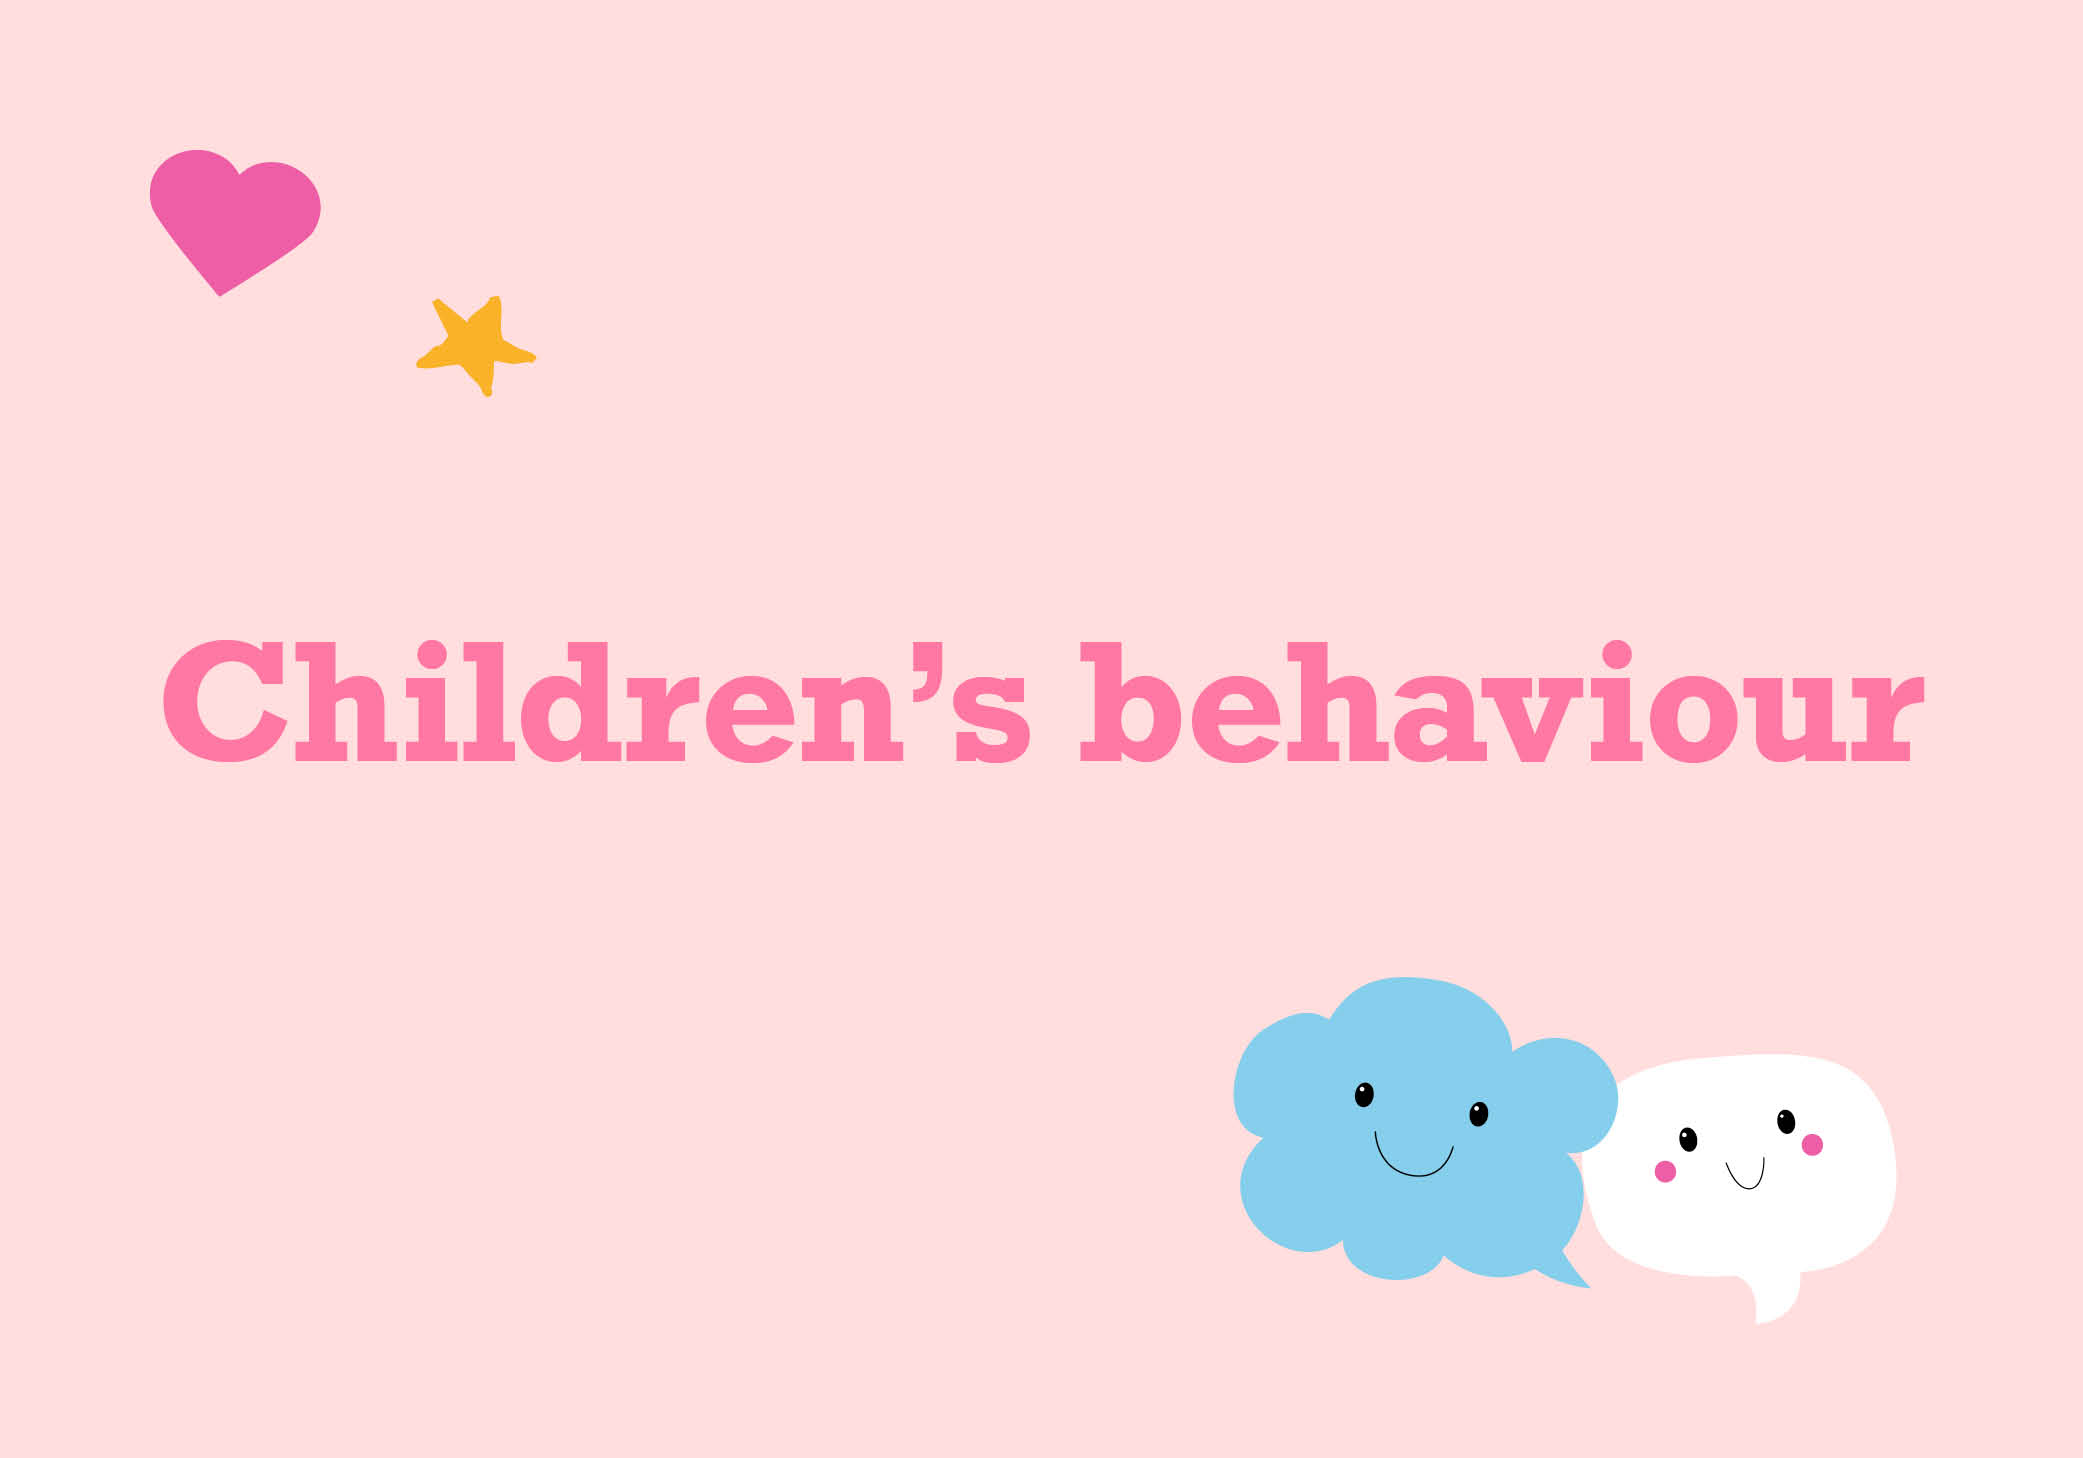 Children's behaviour